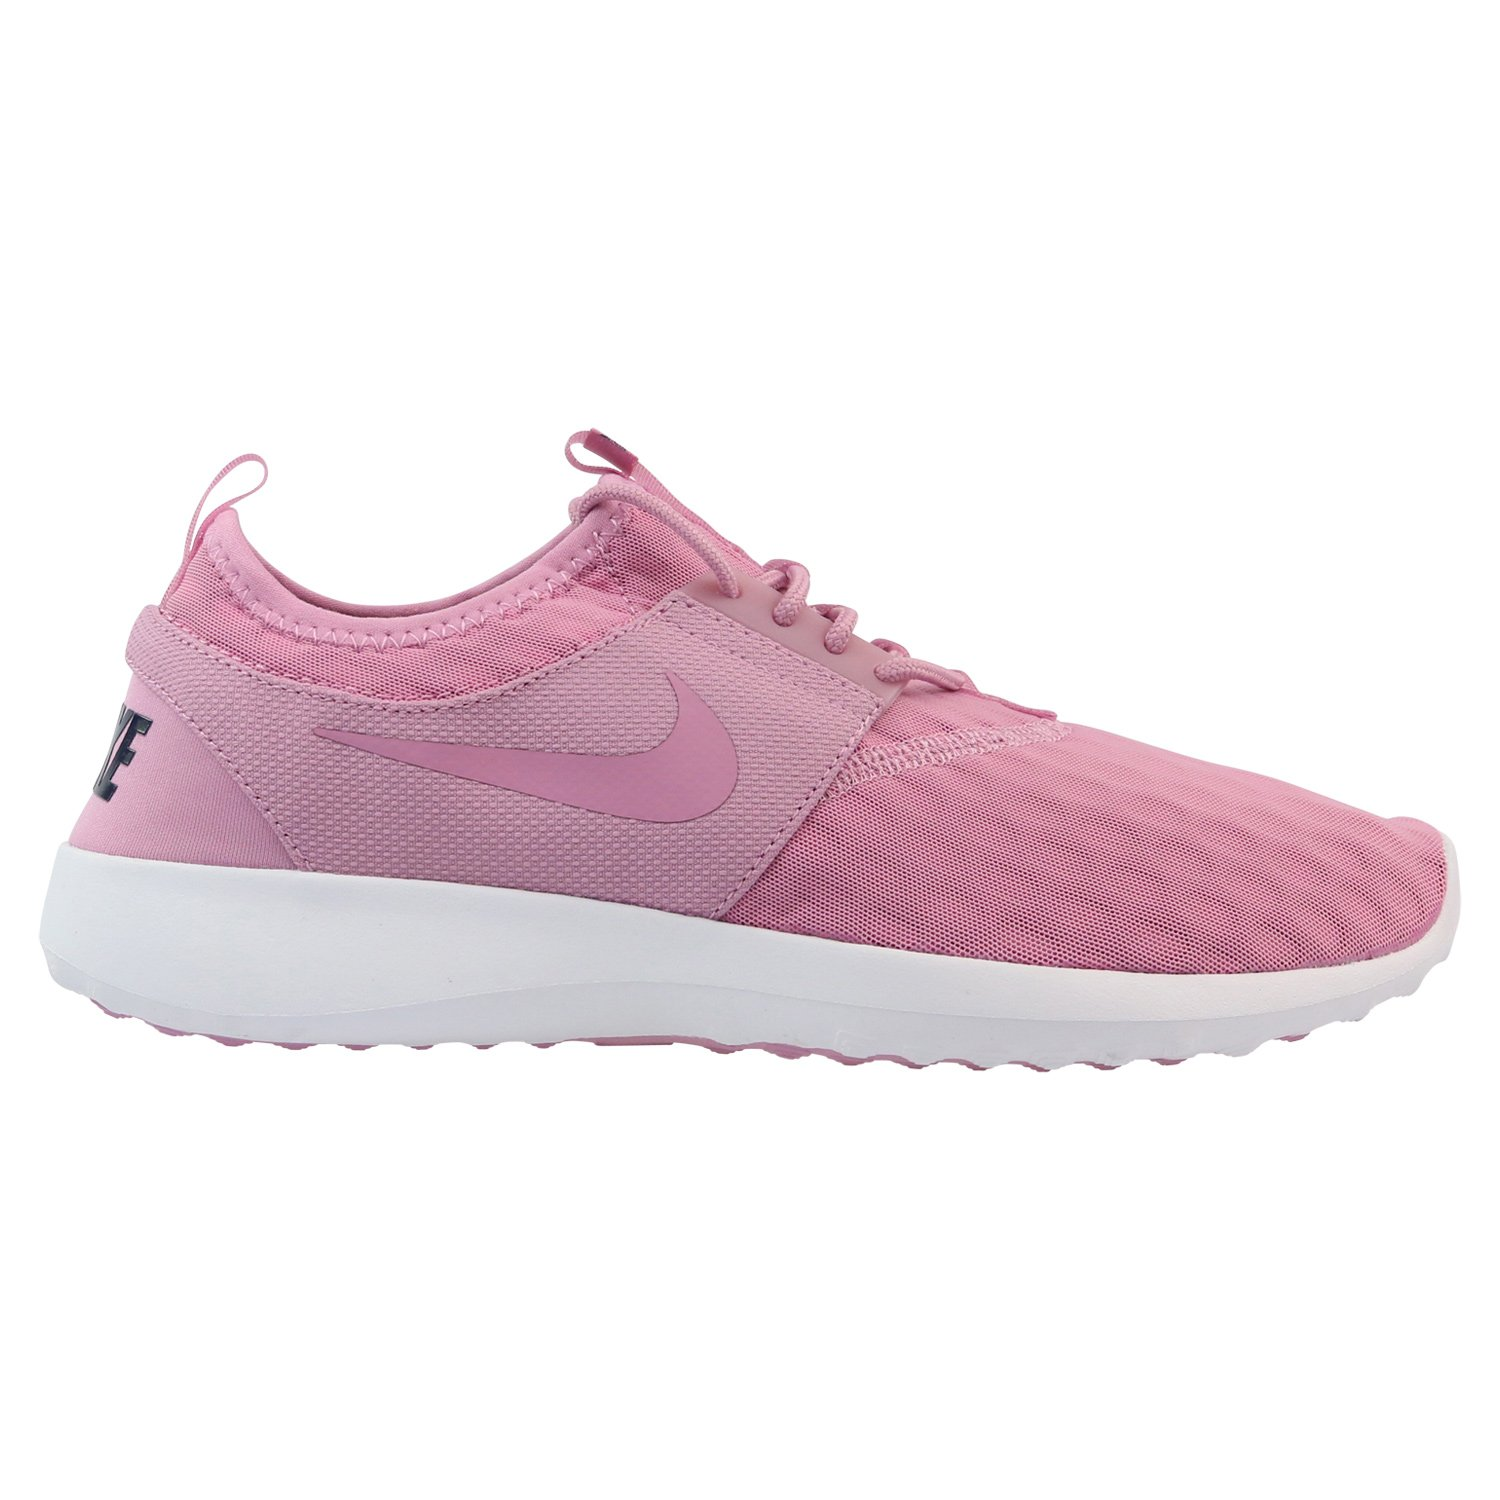 NIKE Women's Juvenate Sneaker, Orchid/Orchid/Midnight Navy White, 8 B US